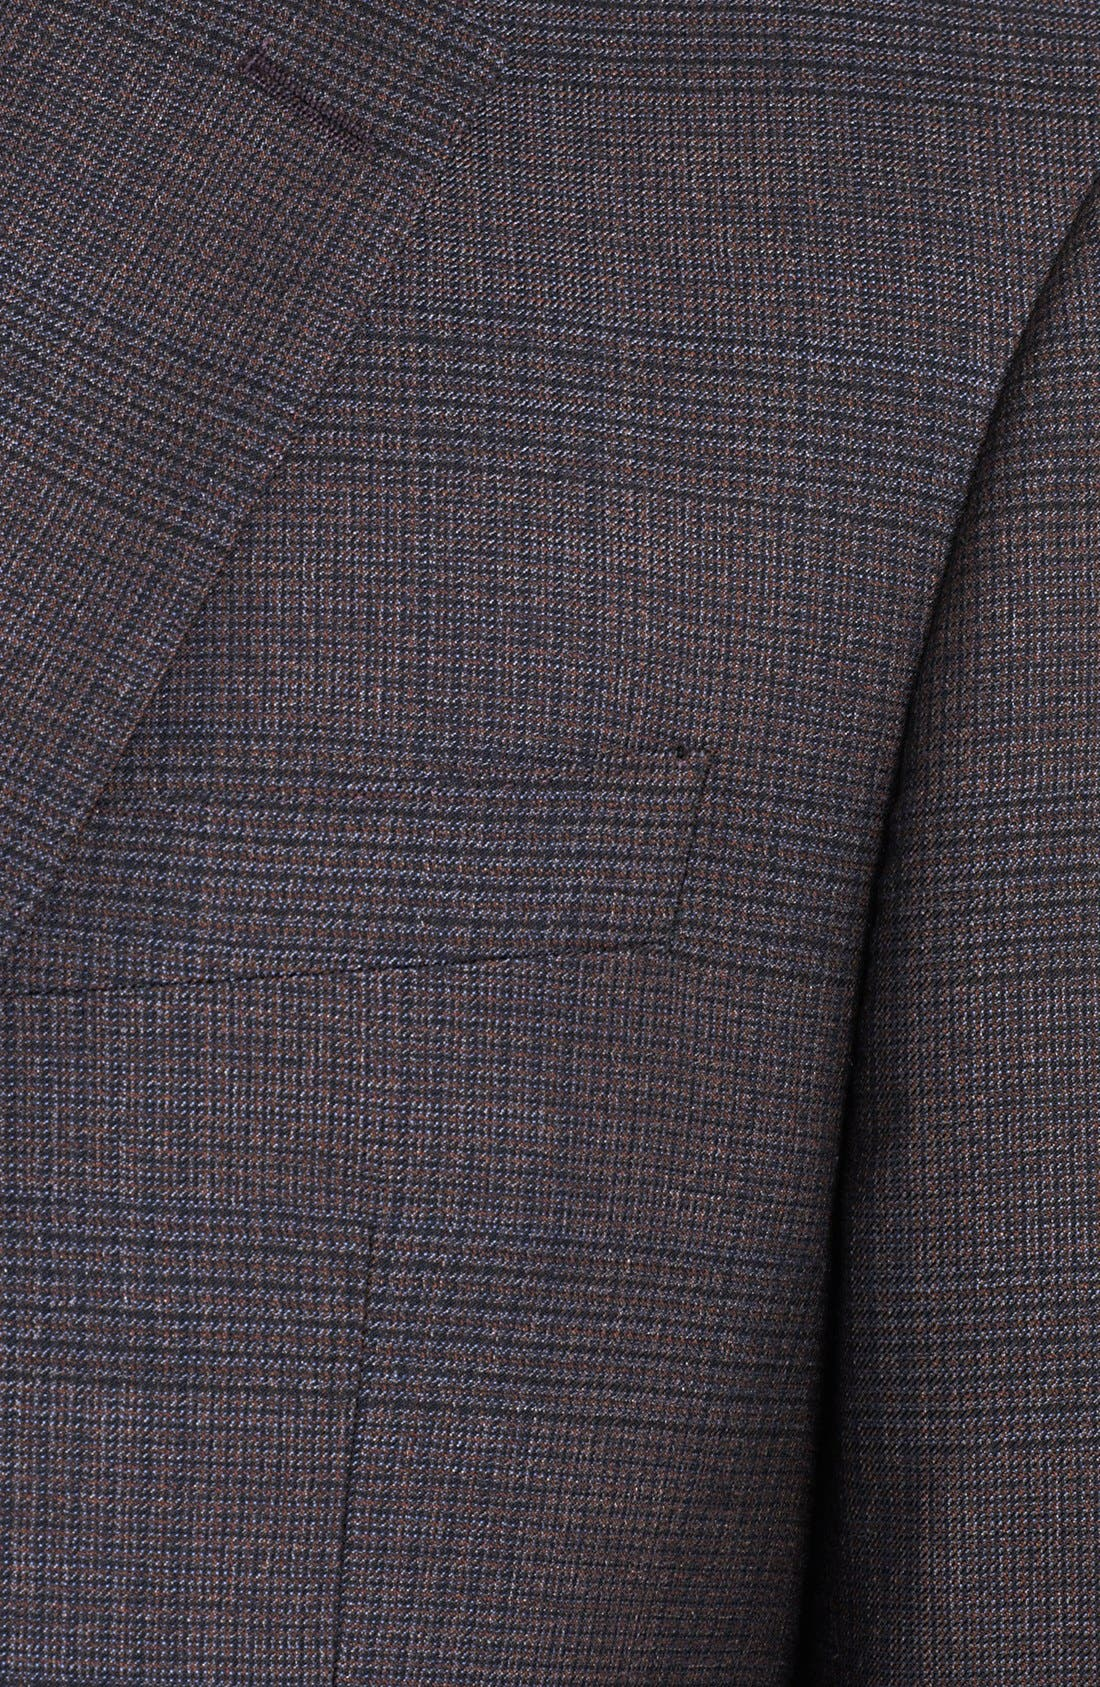 Alternate Image 2  - Burberry London Plaid Wool Sportcoat